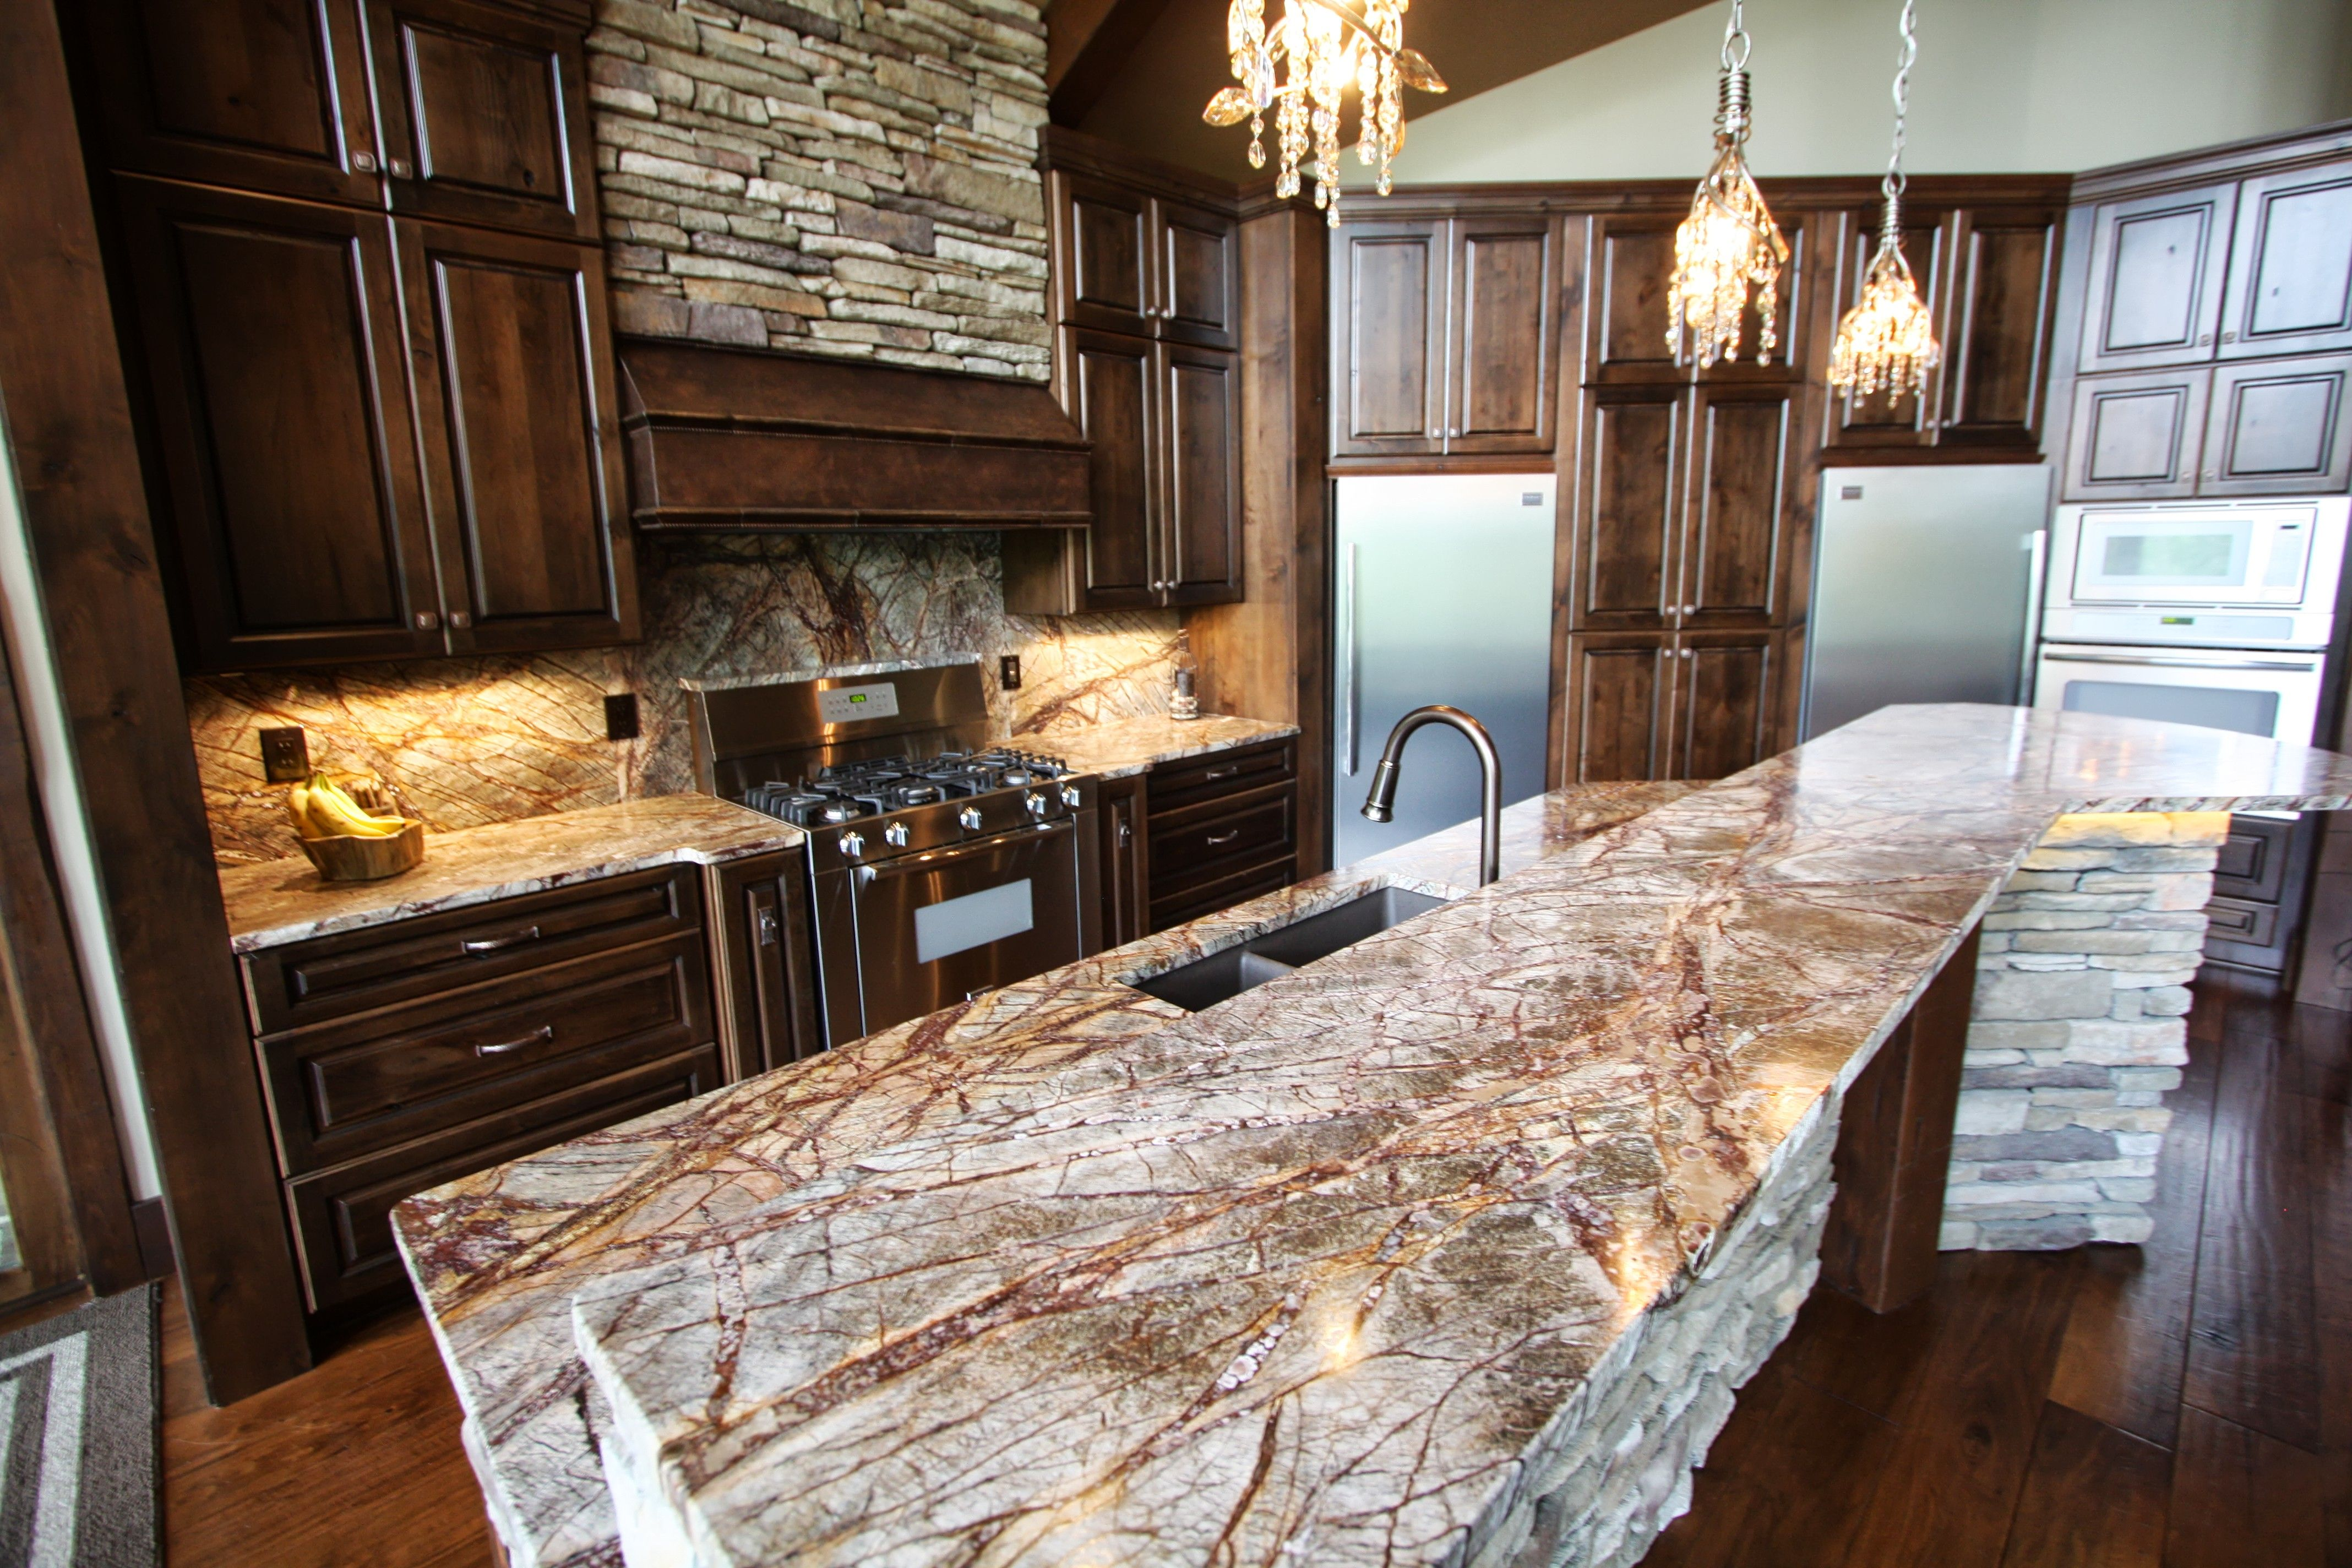 Rustic Kitchen With Granite Countertops : Rustic kitchen with exotic granite counter tops custom